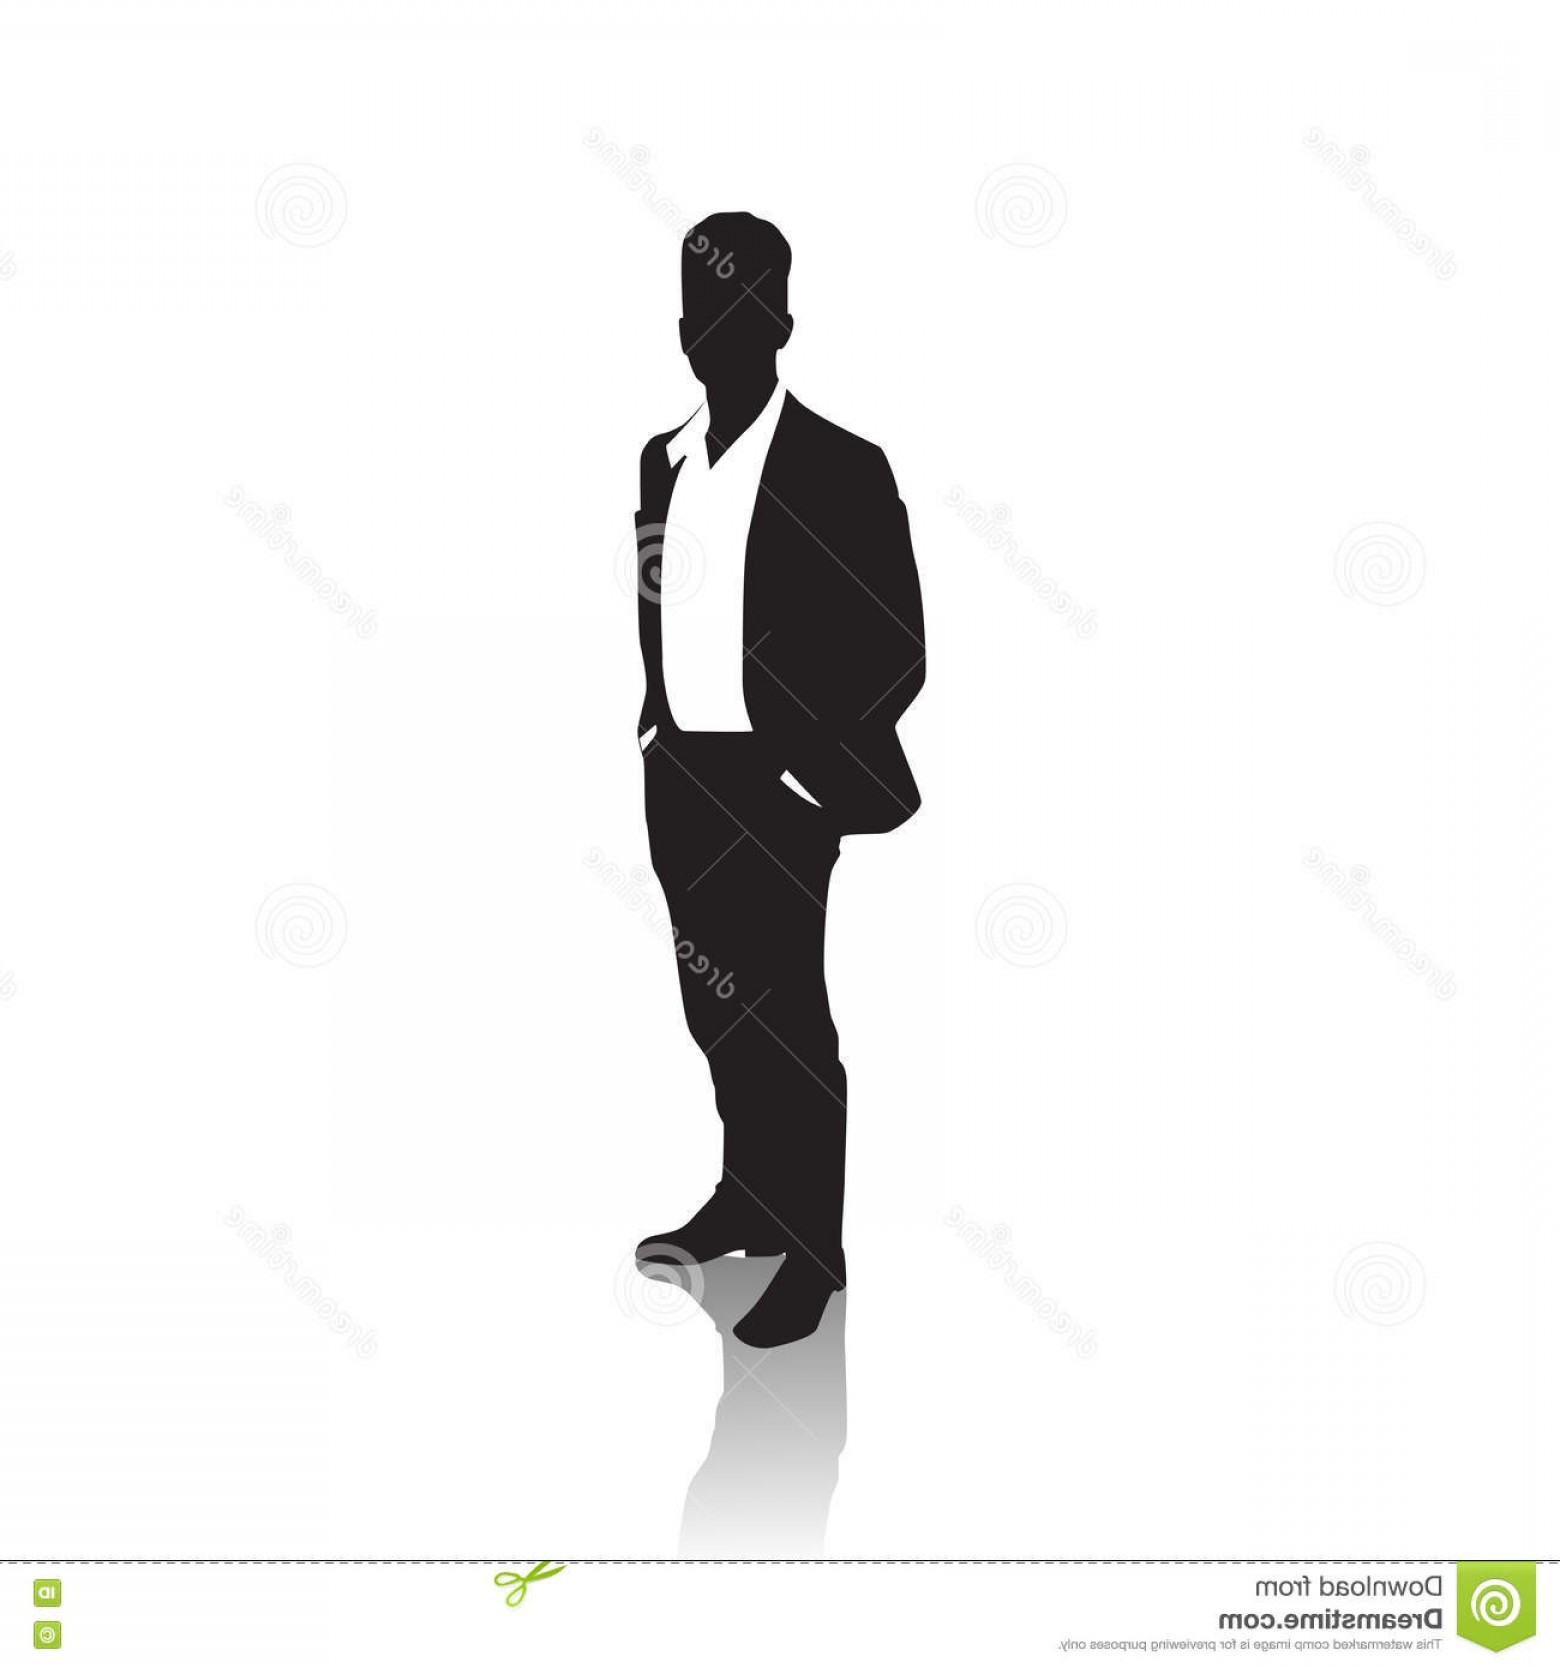 James Bond Silhouette Vector: Stock Illustration Business Man Black Silhouette Standing Full Length Over White Background Hands Pockets Vector Illustration Image